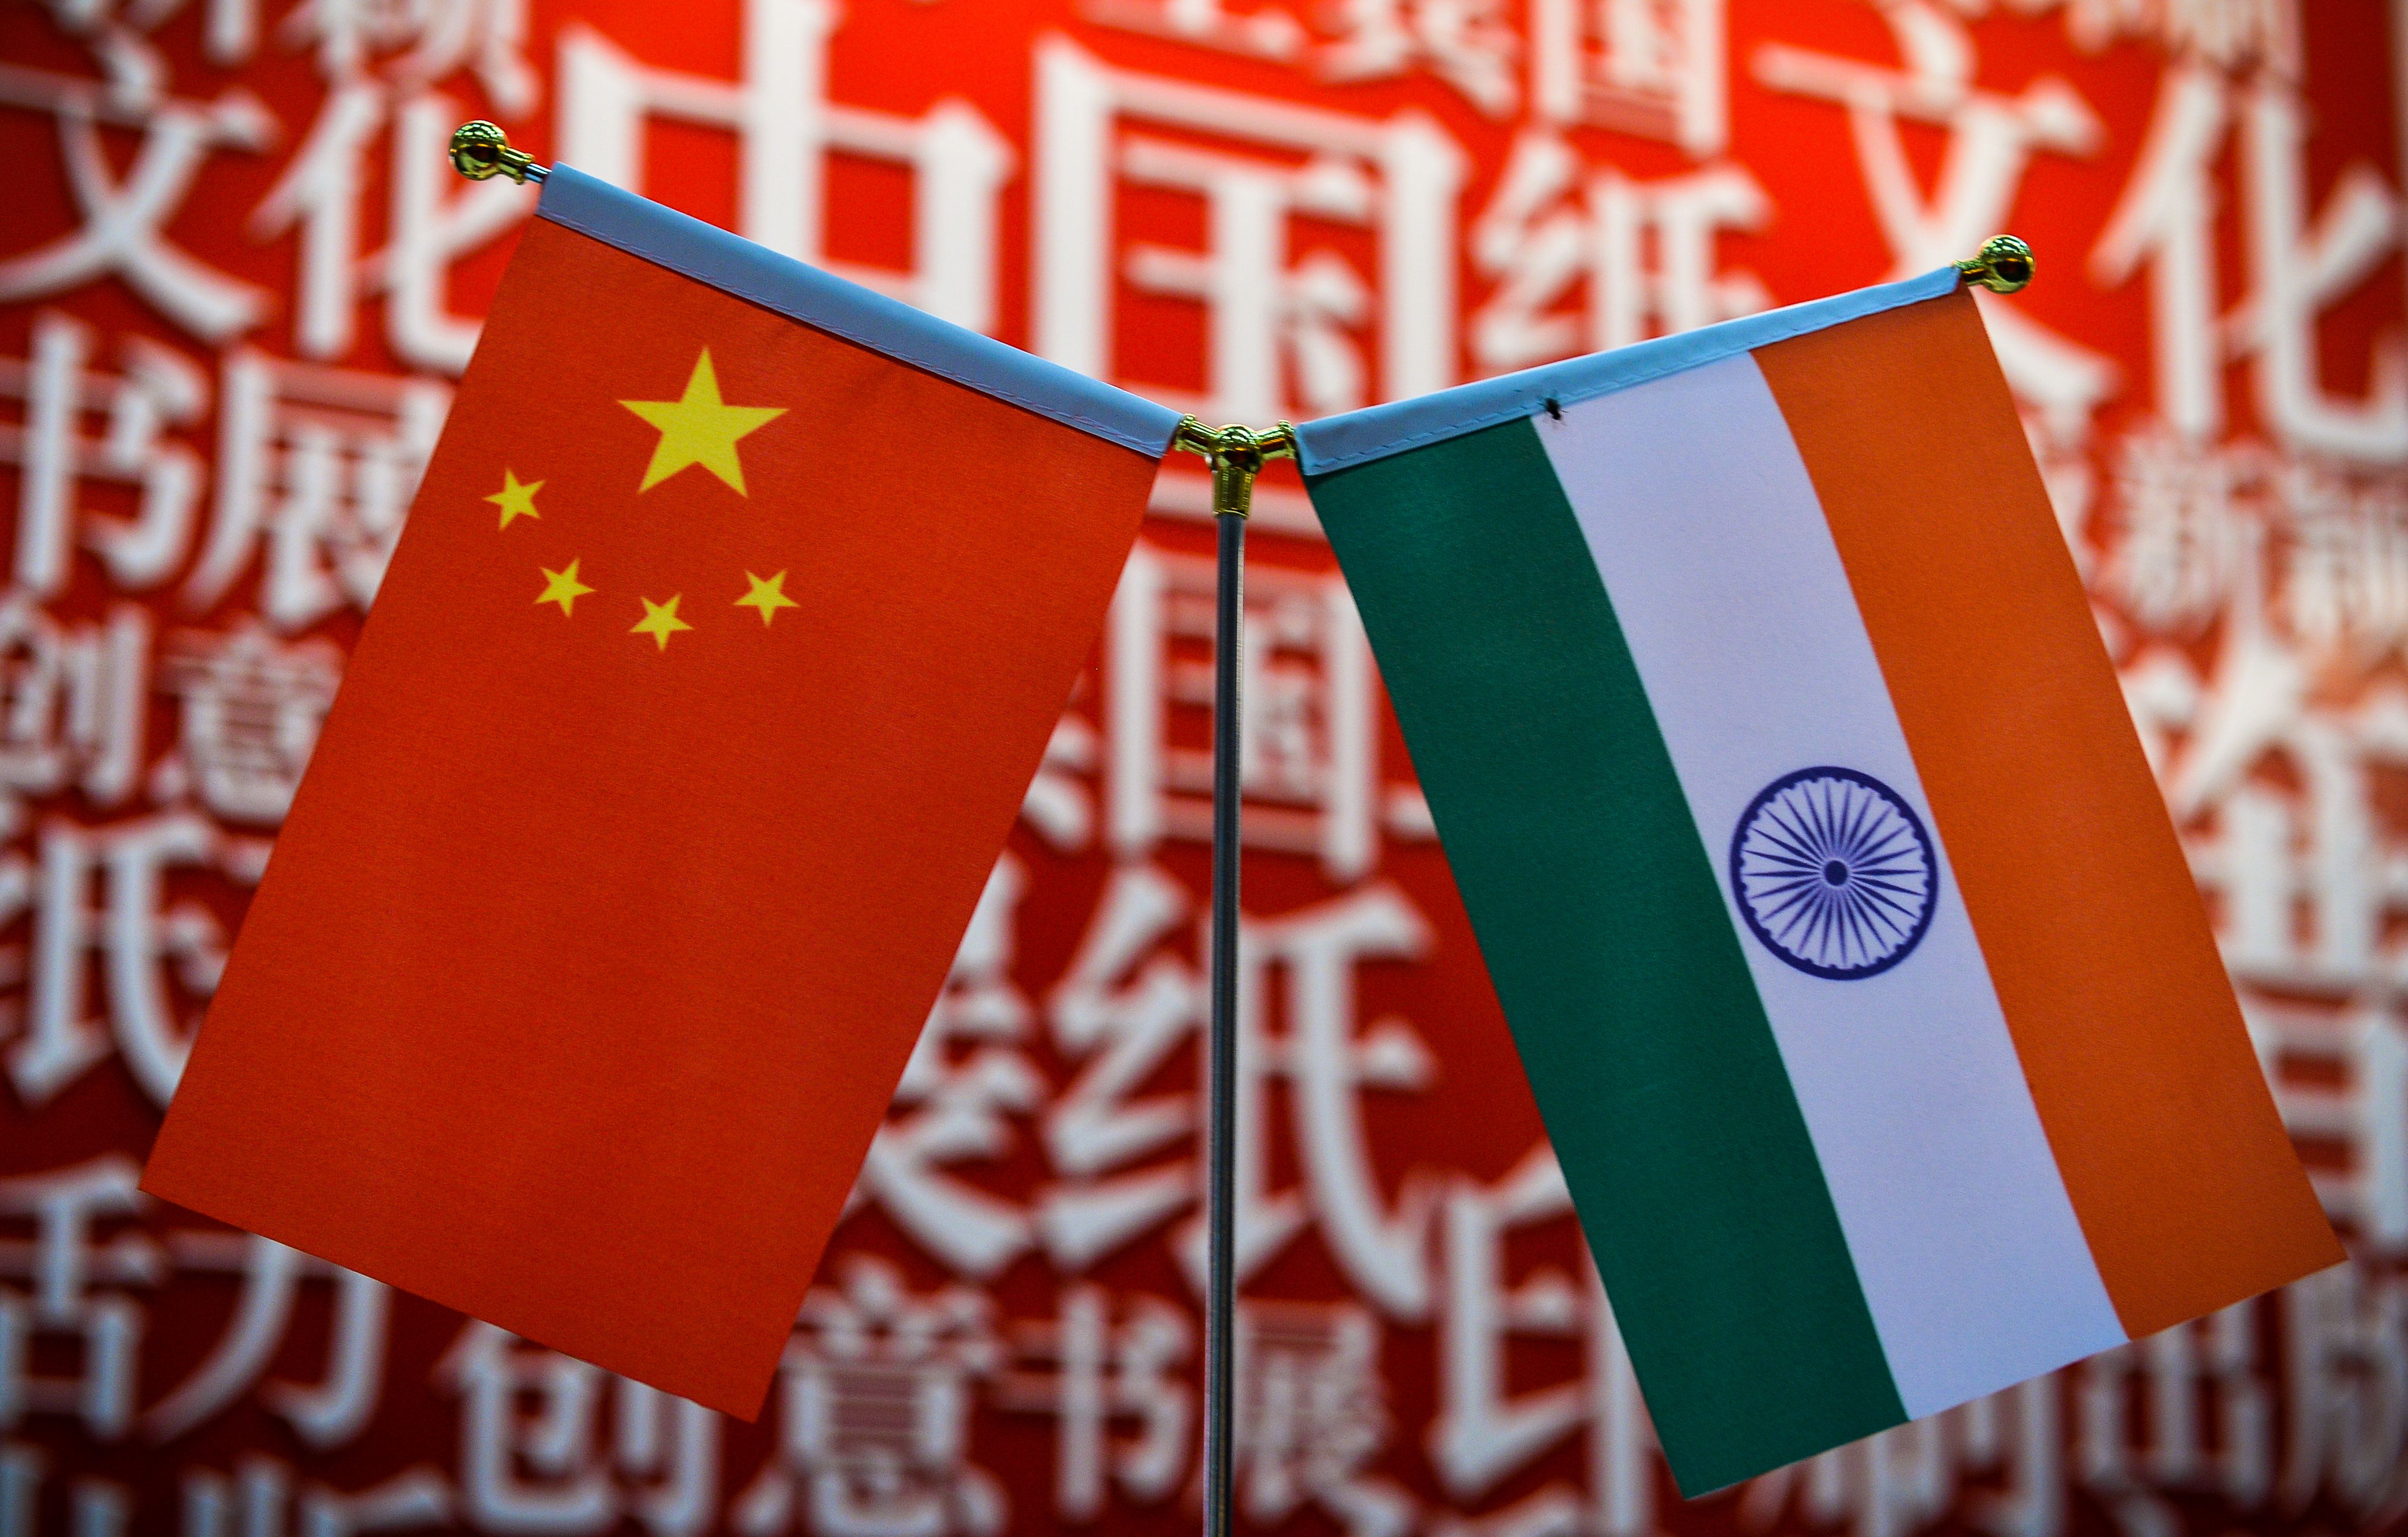 Chinese troops deployed amid India border tensions